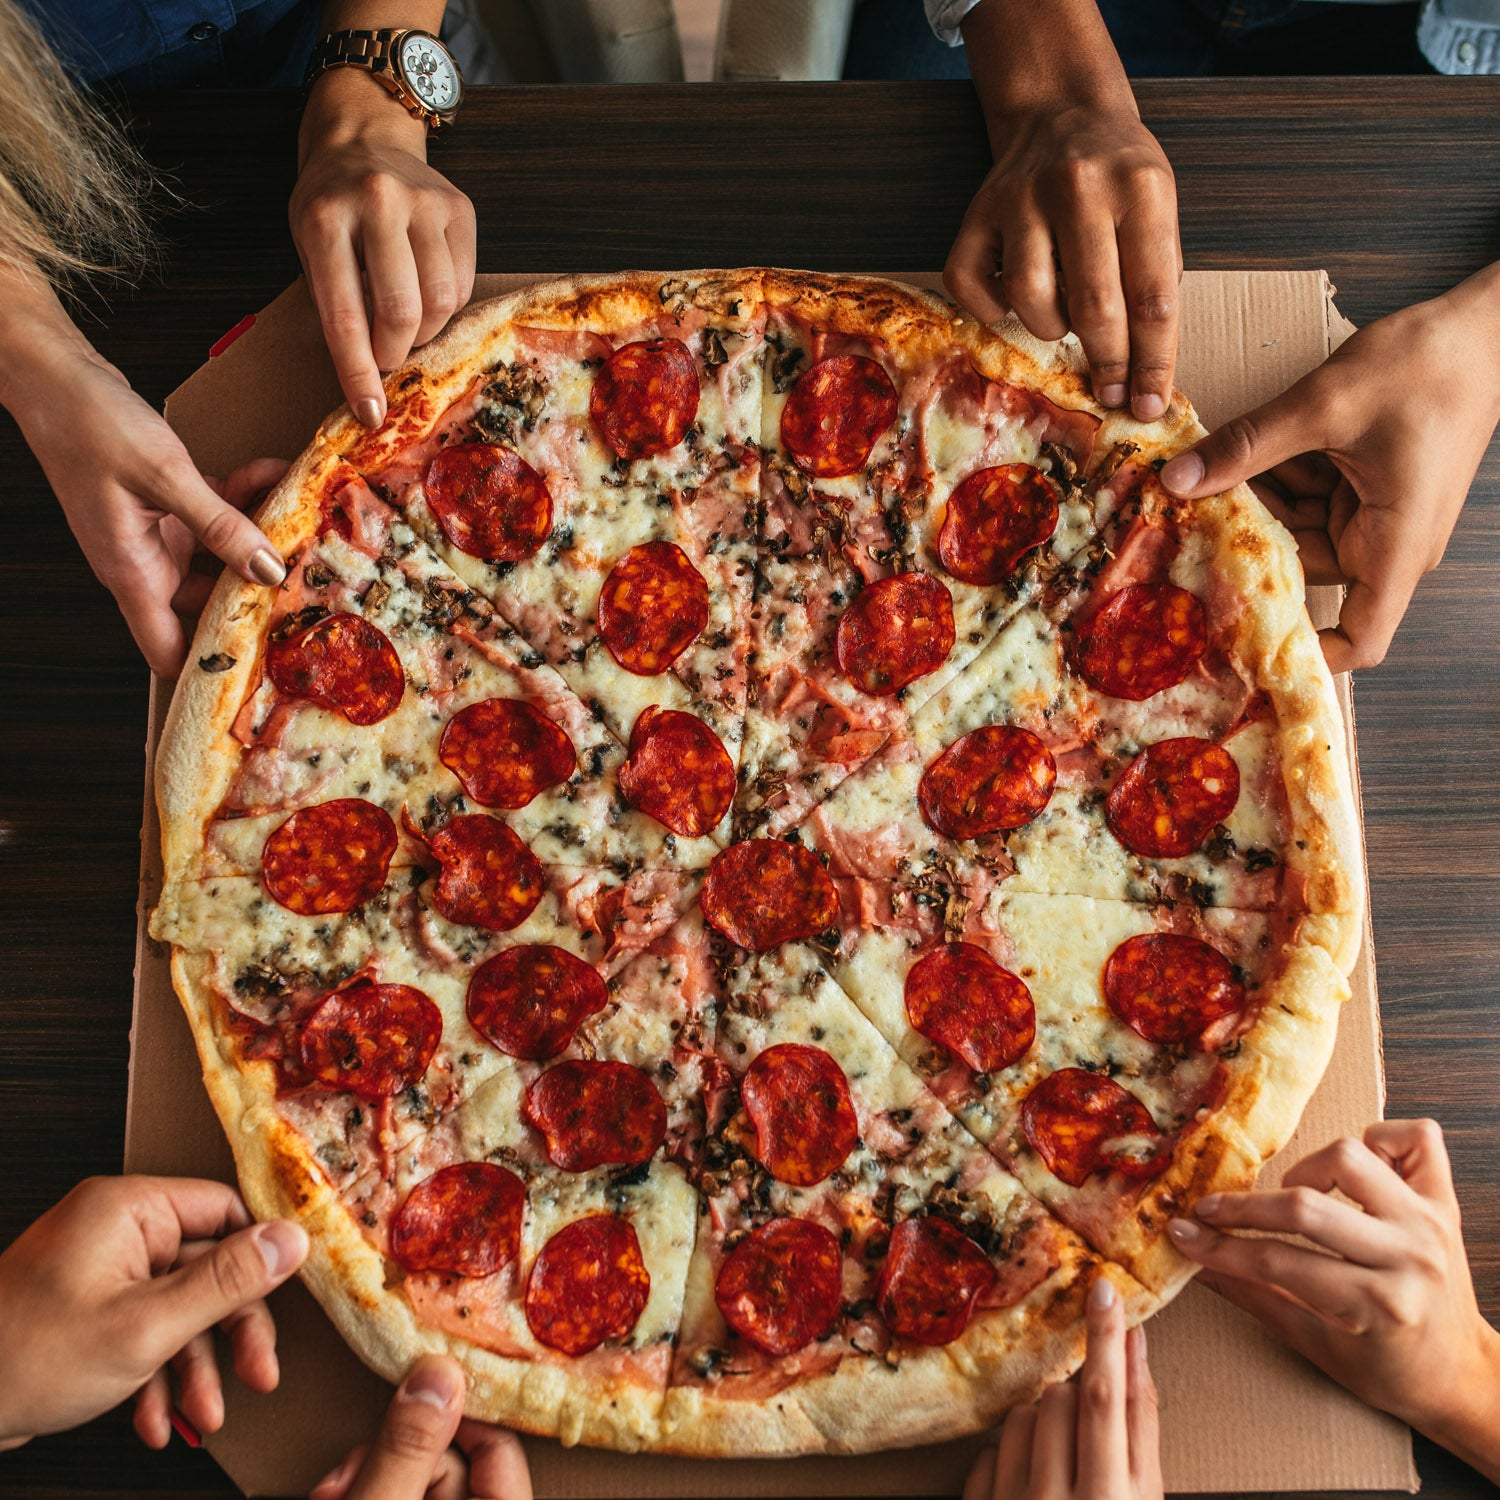 Pizza Study Shows Metabolism Is Minimally Affected By Occasional Calorie Binge